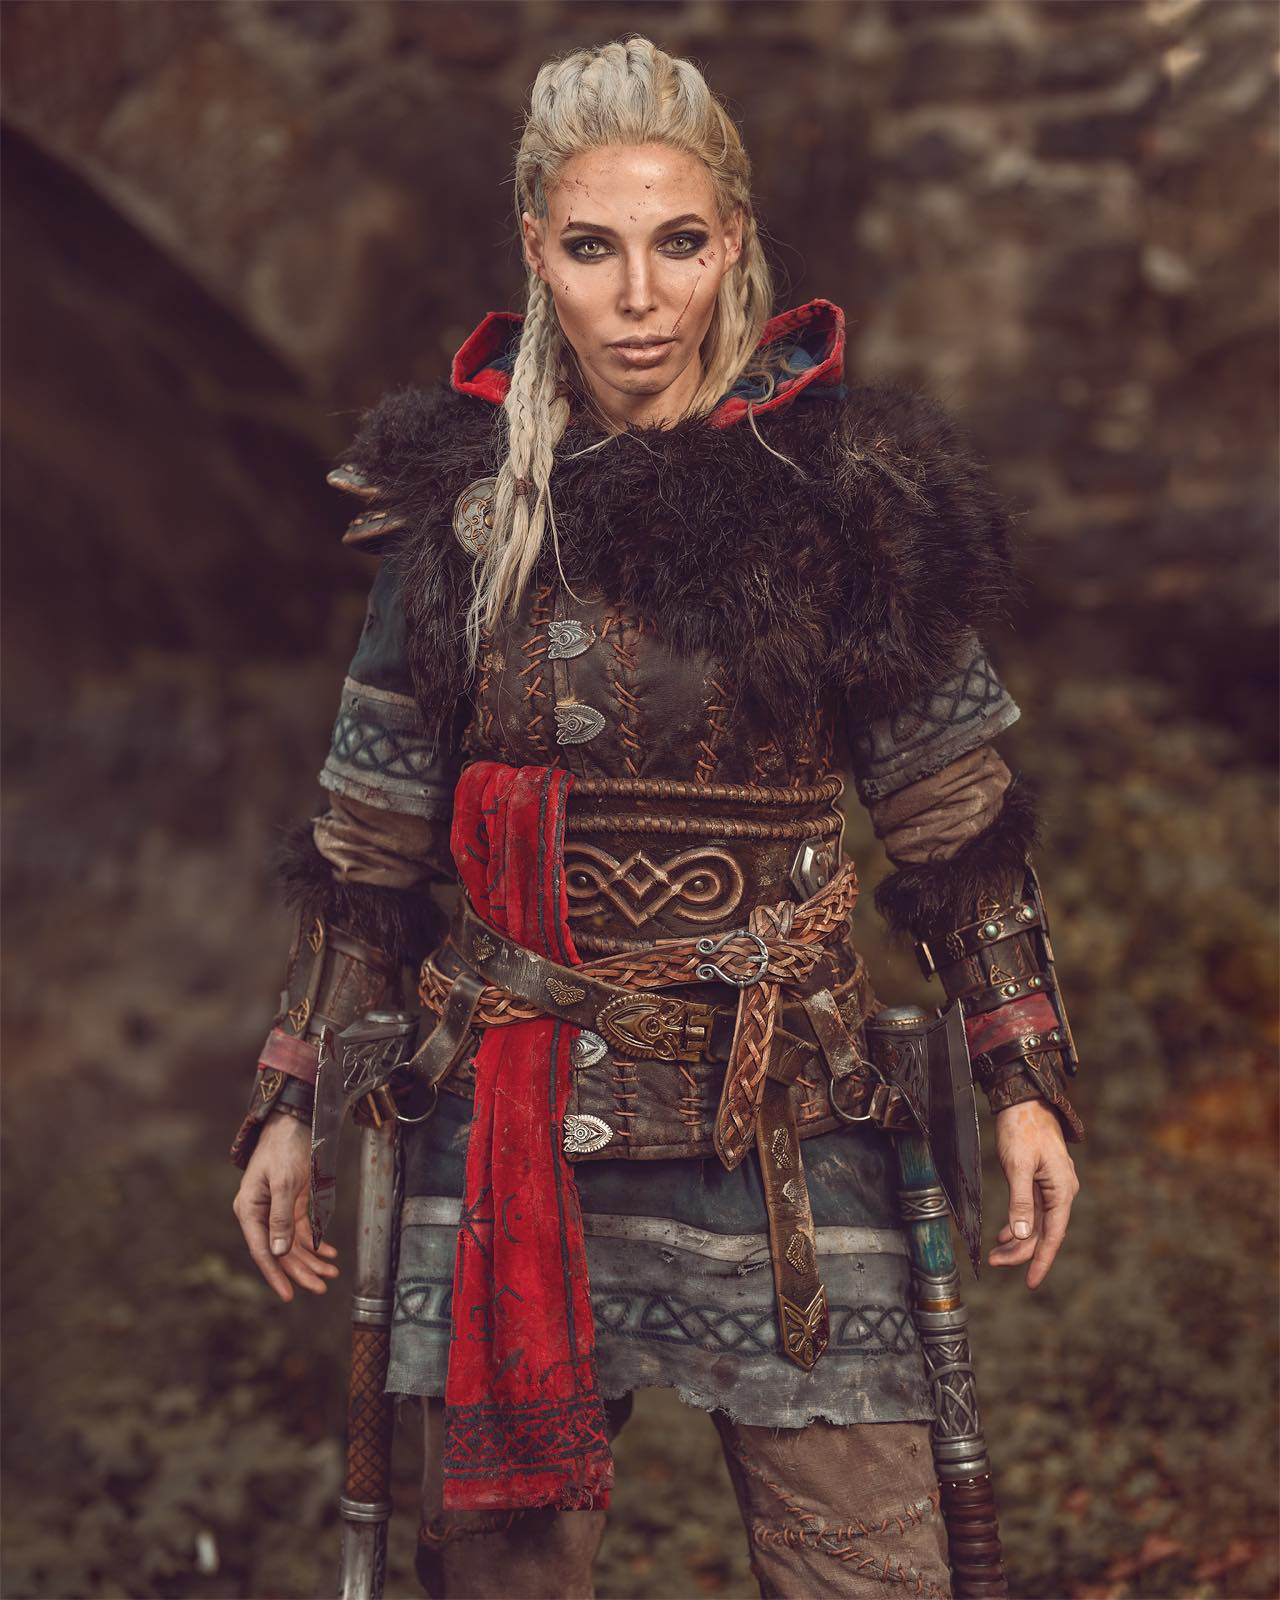 A Double Assassin S Creed Valhalla Cosplay By Maja Felicitas And Maul Cosplay Respawwn